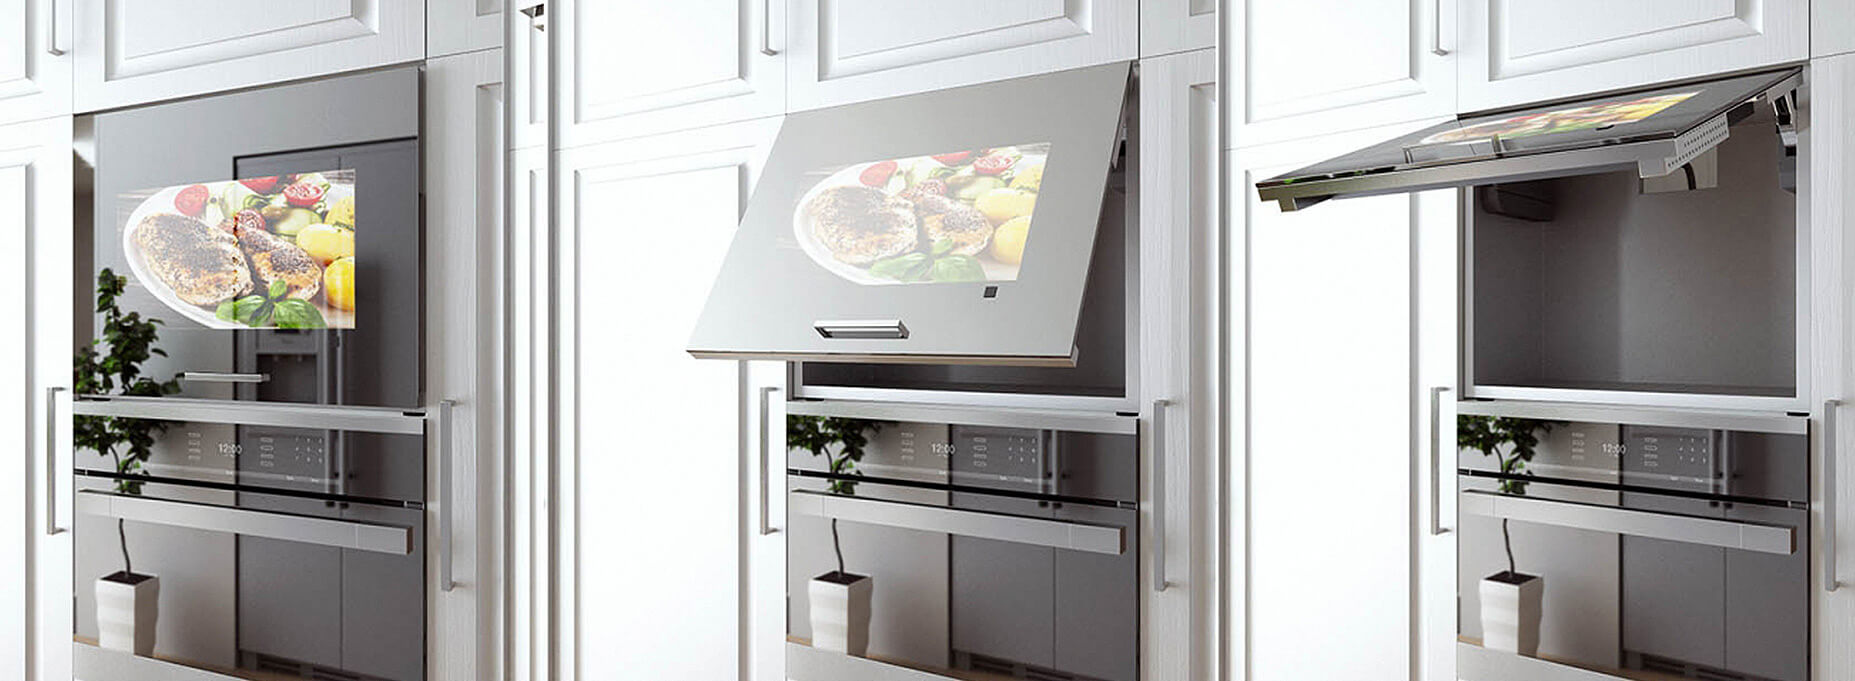 Kitchen Smart TV that is customizable for your kitchen.